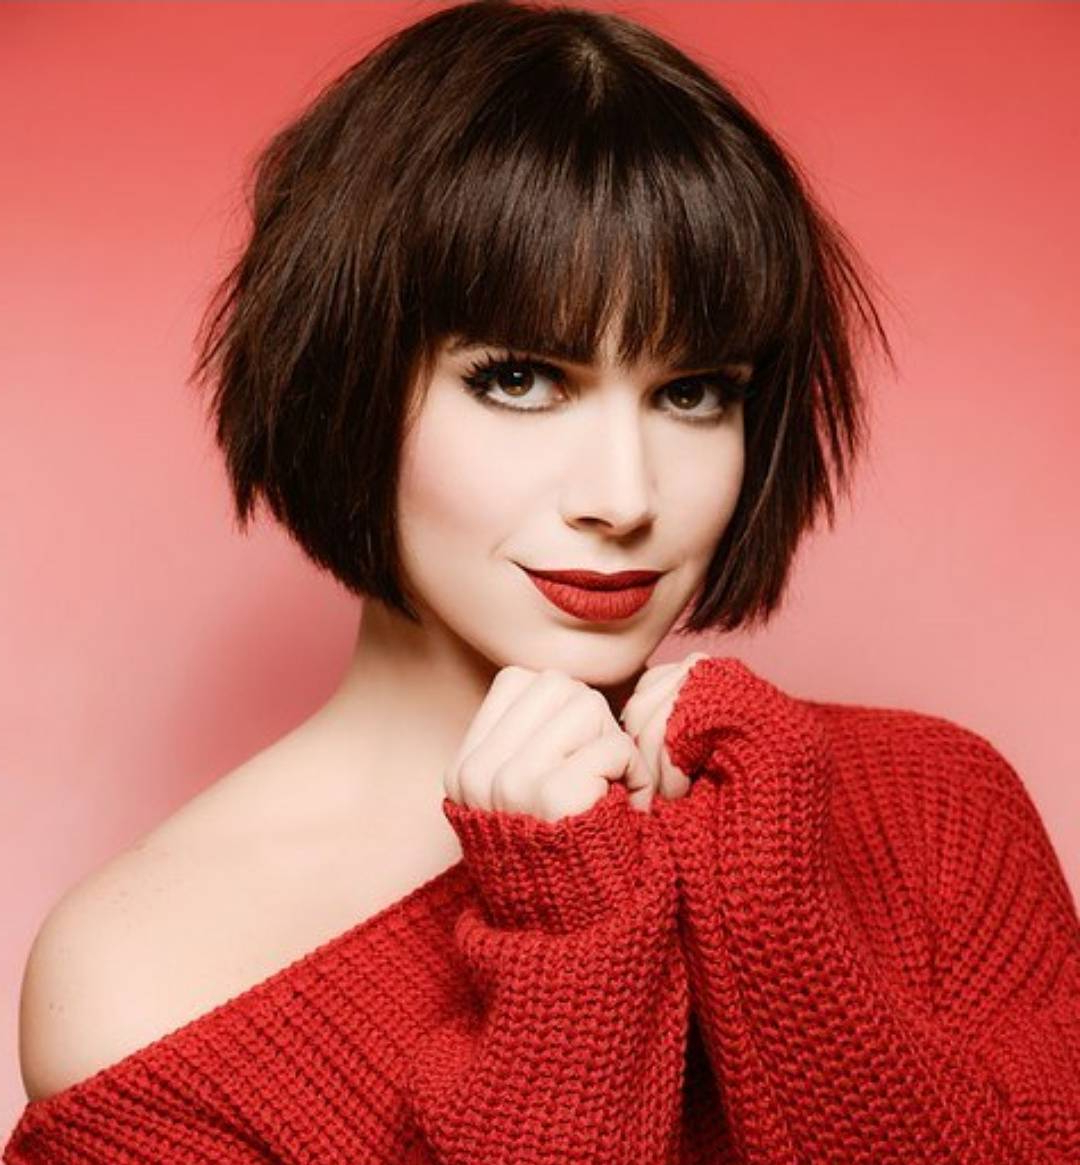 10 Chic Short Bob Haircuts That Balance Your Face Shape! – Short In Frizzy Razored White Blonde Bob Haircuts (View 1 of 20)